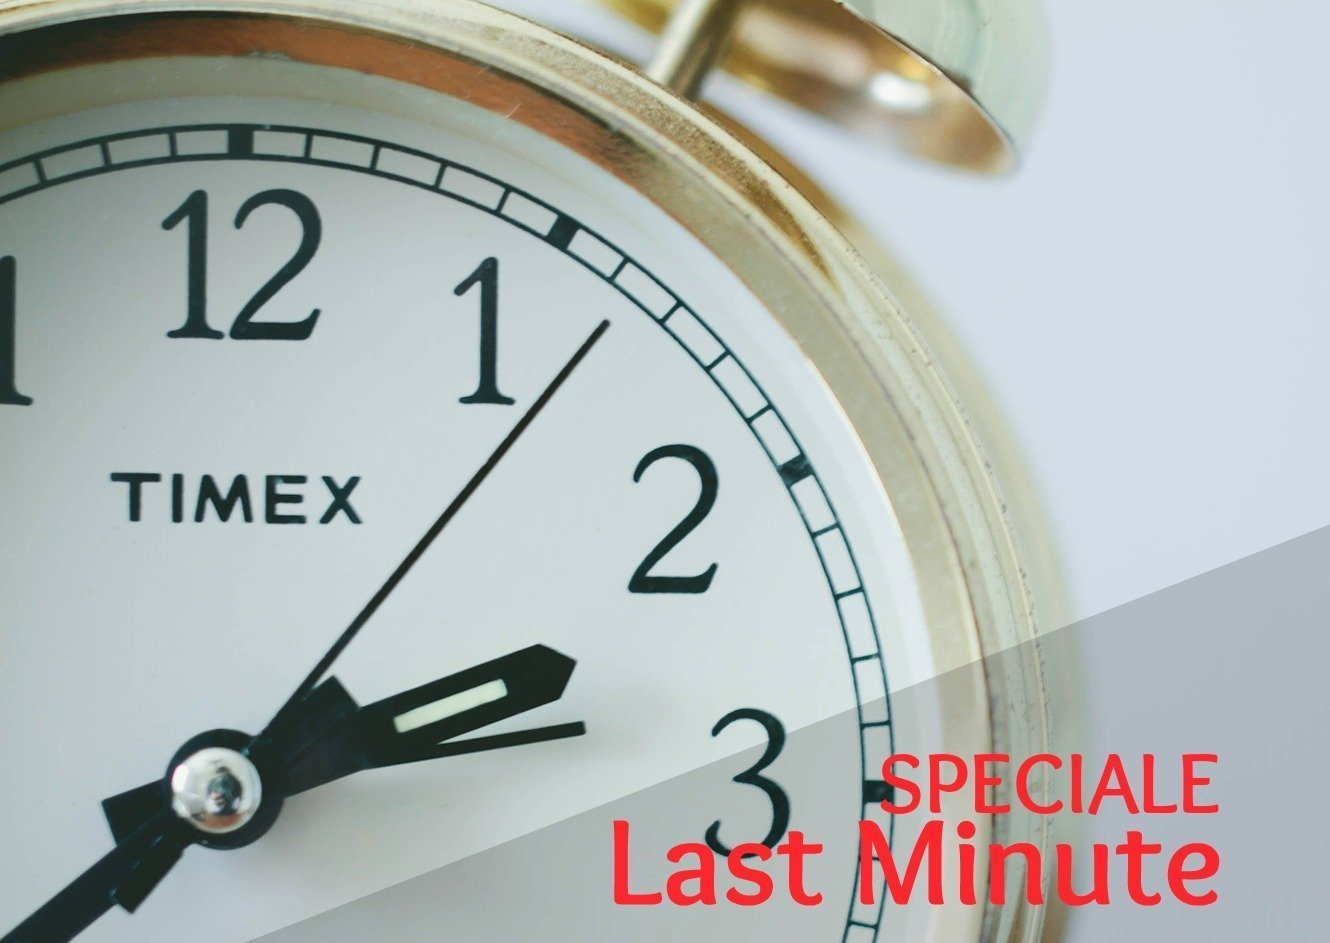 speciale last minute